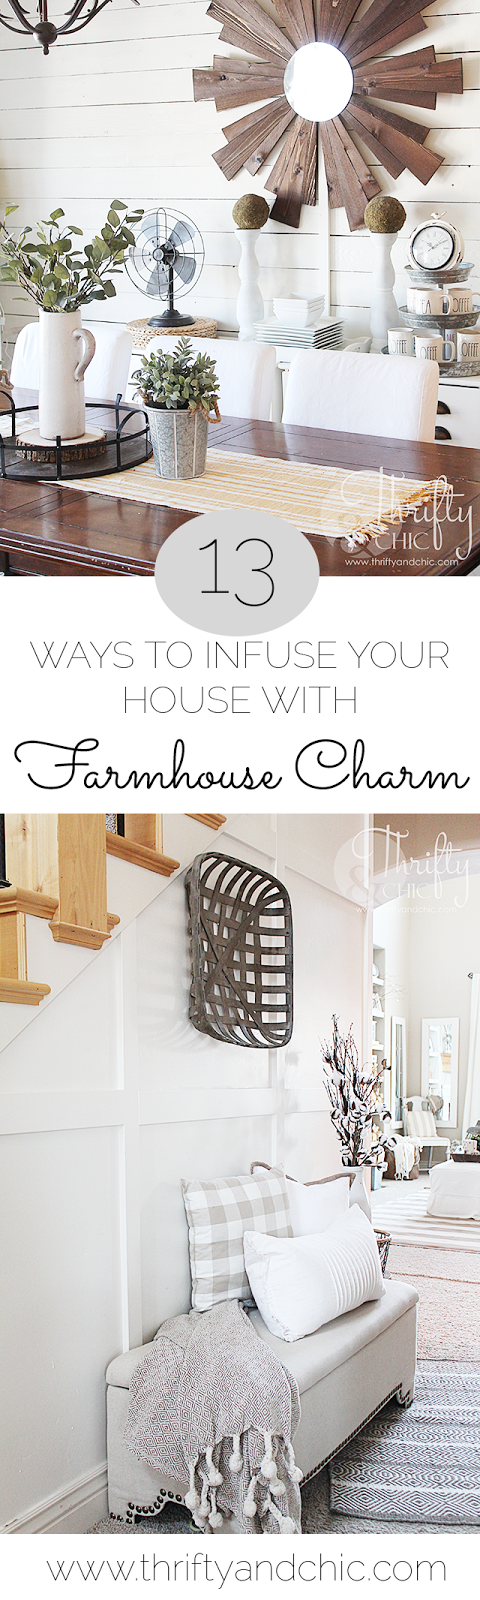 Ways to add farmhouse charm and style to your house. Great tips to get the Fixer Upper style and decor ideas